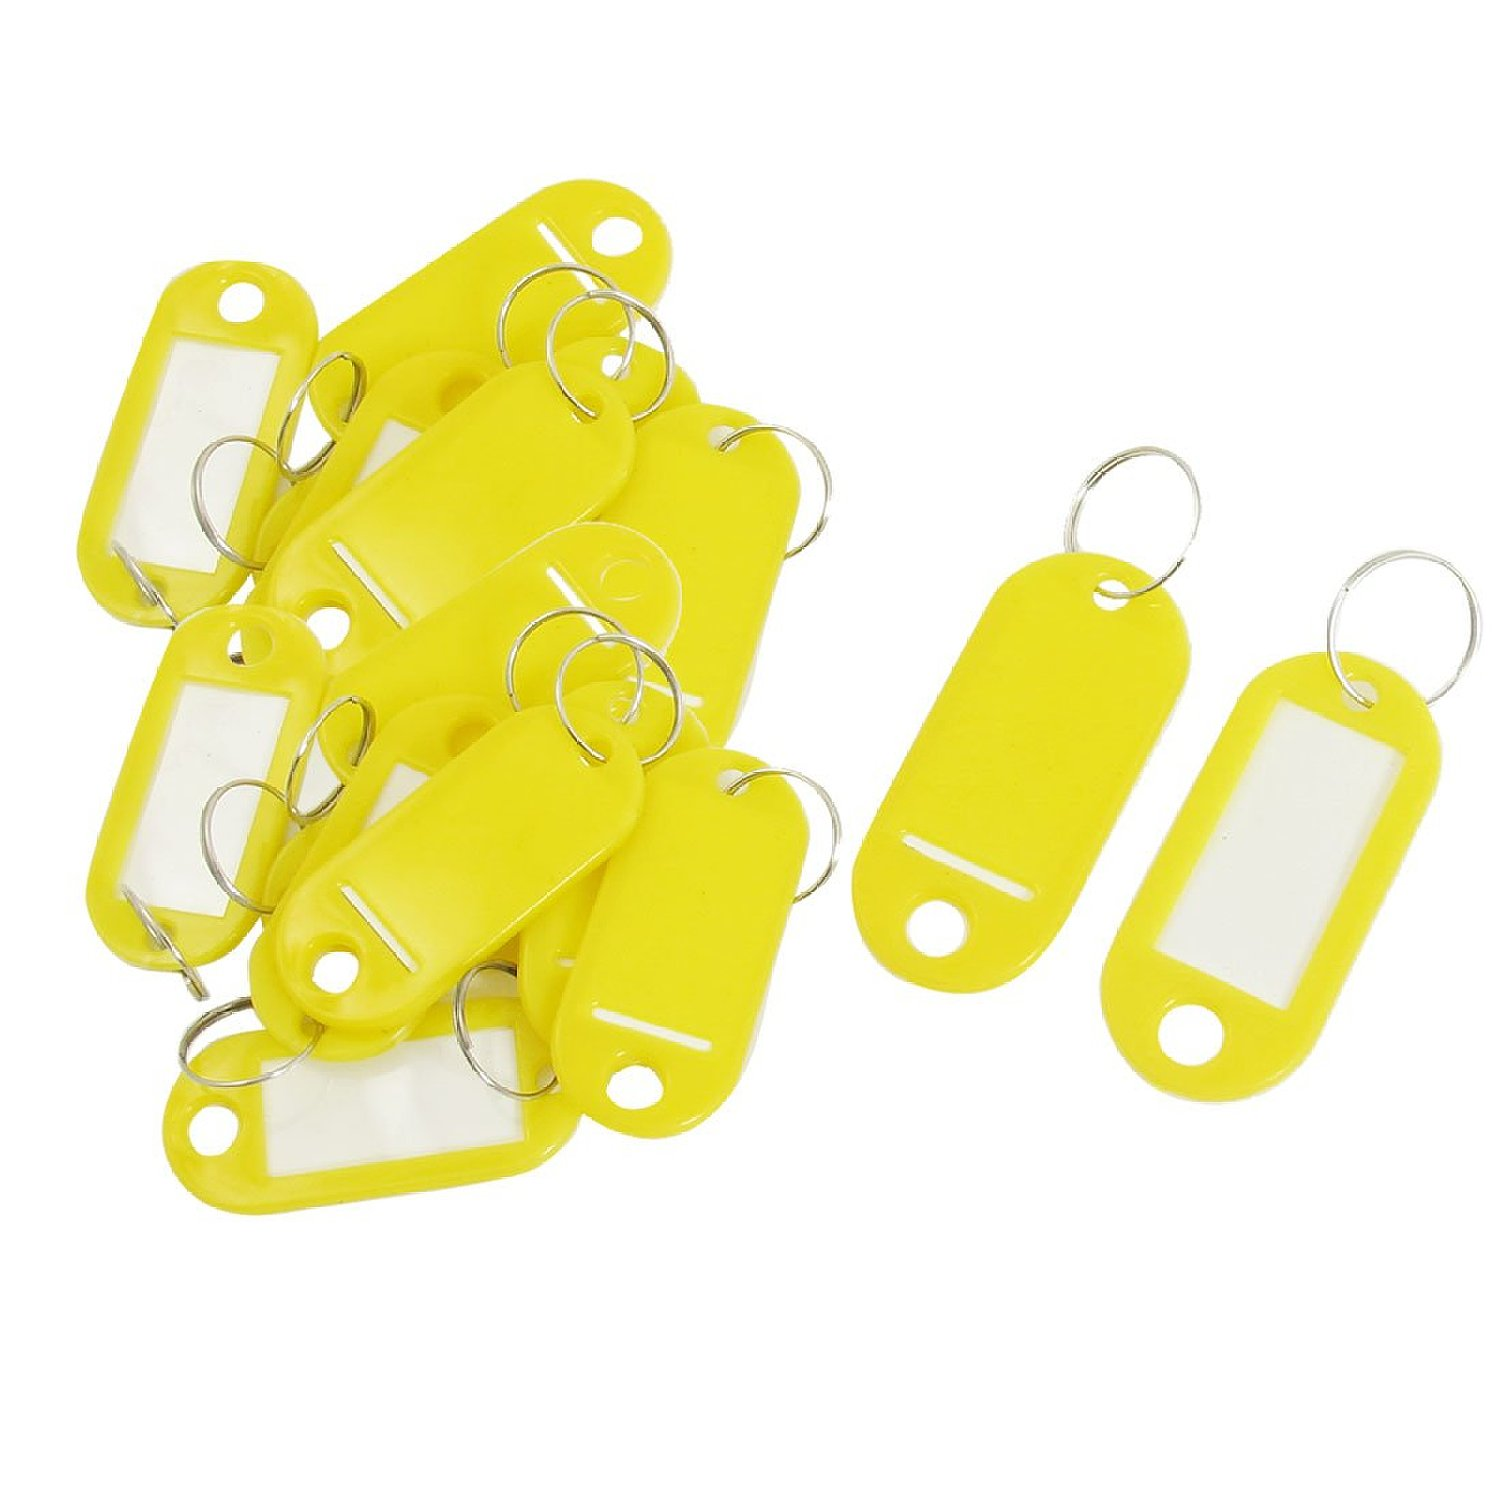 20pcs Yellow Plastic Key Fobs Luggage ID Tags Name Cards Labels Keyrings